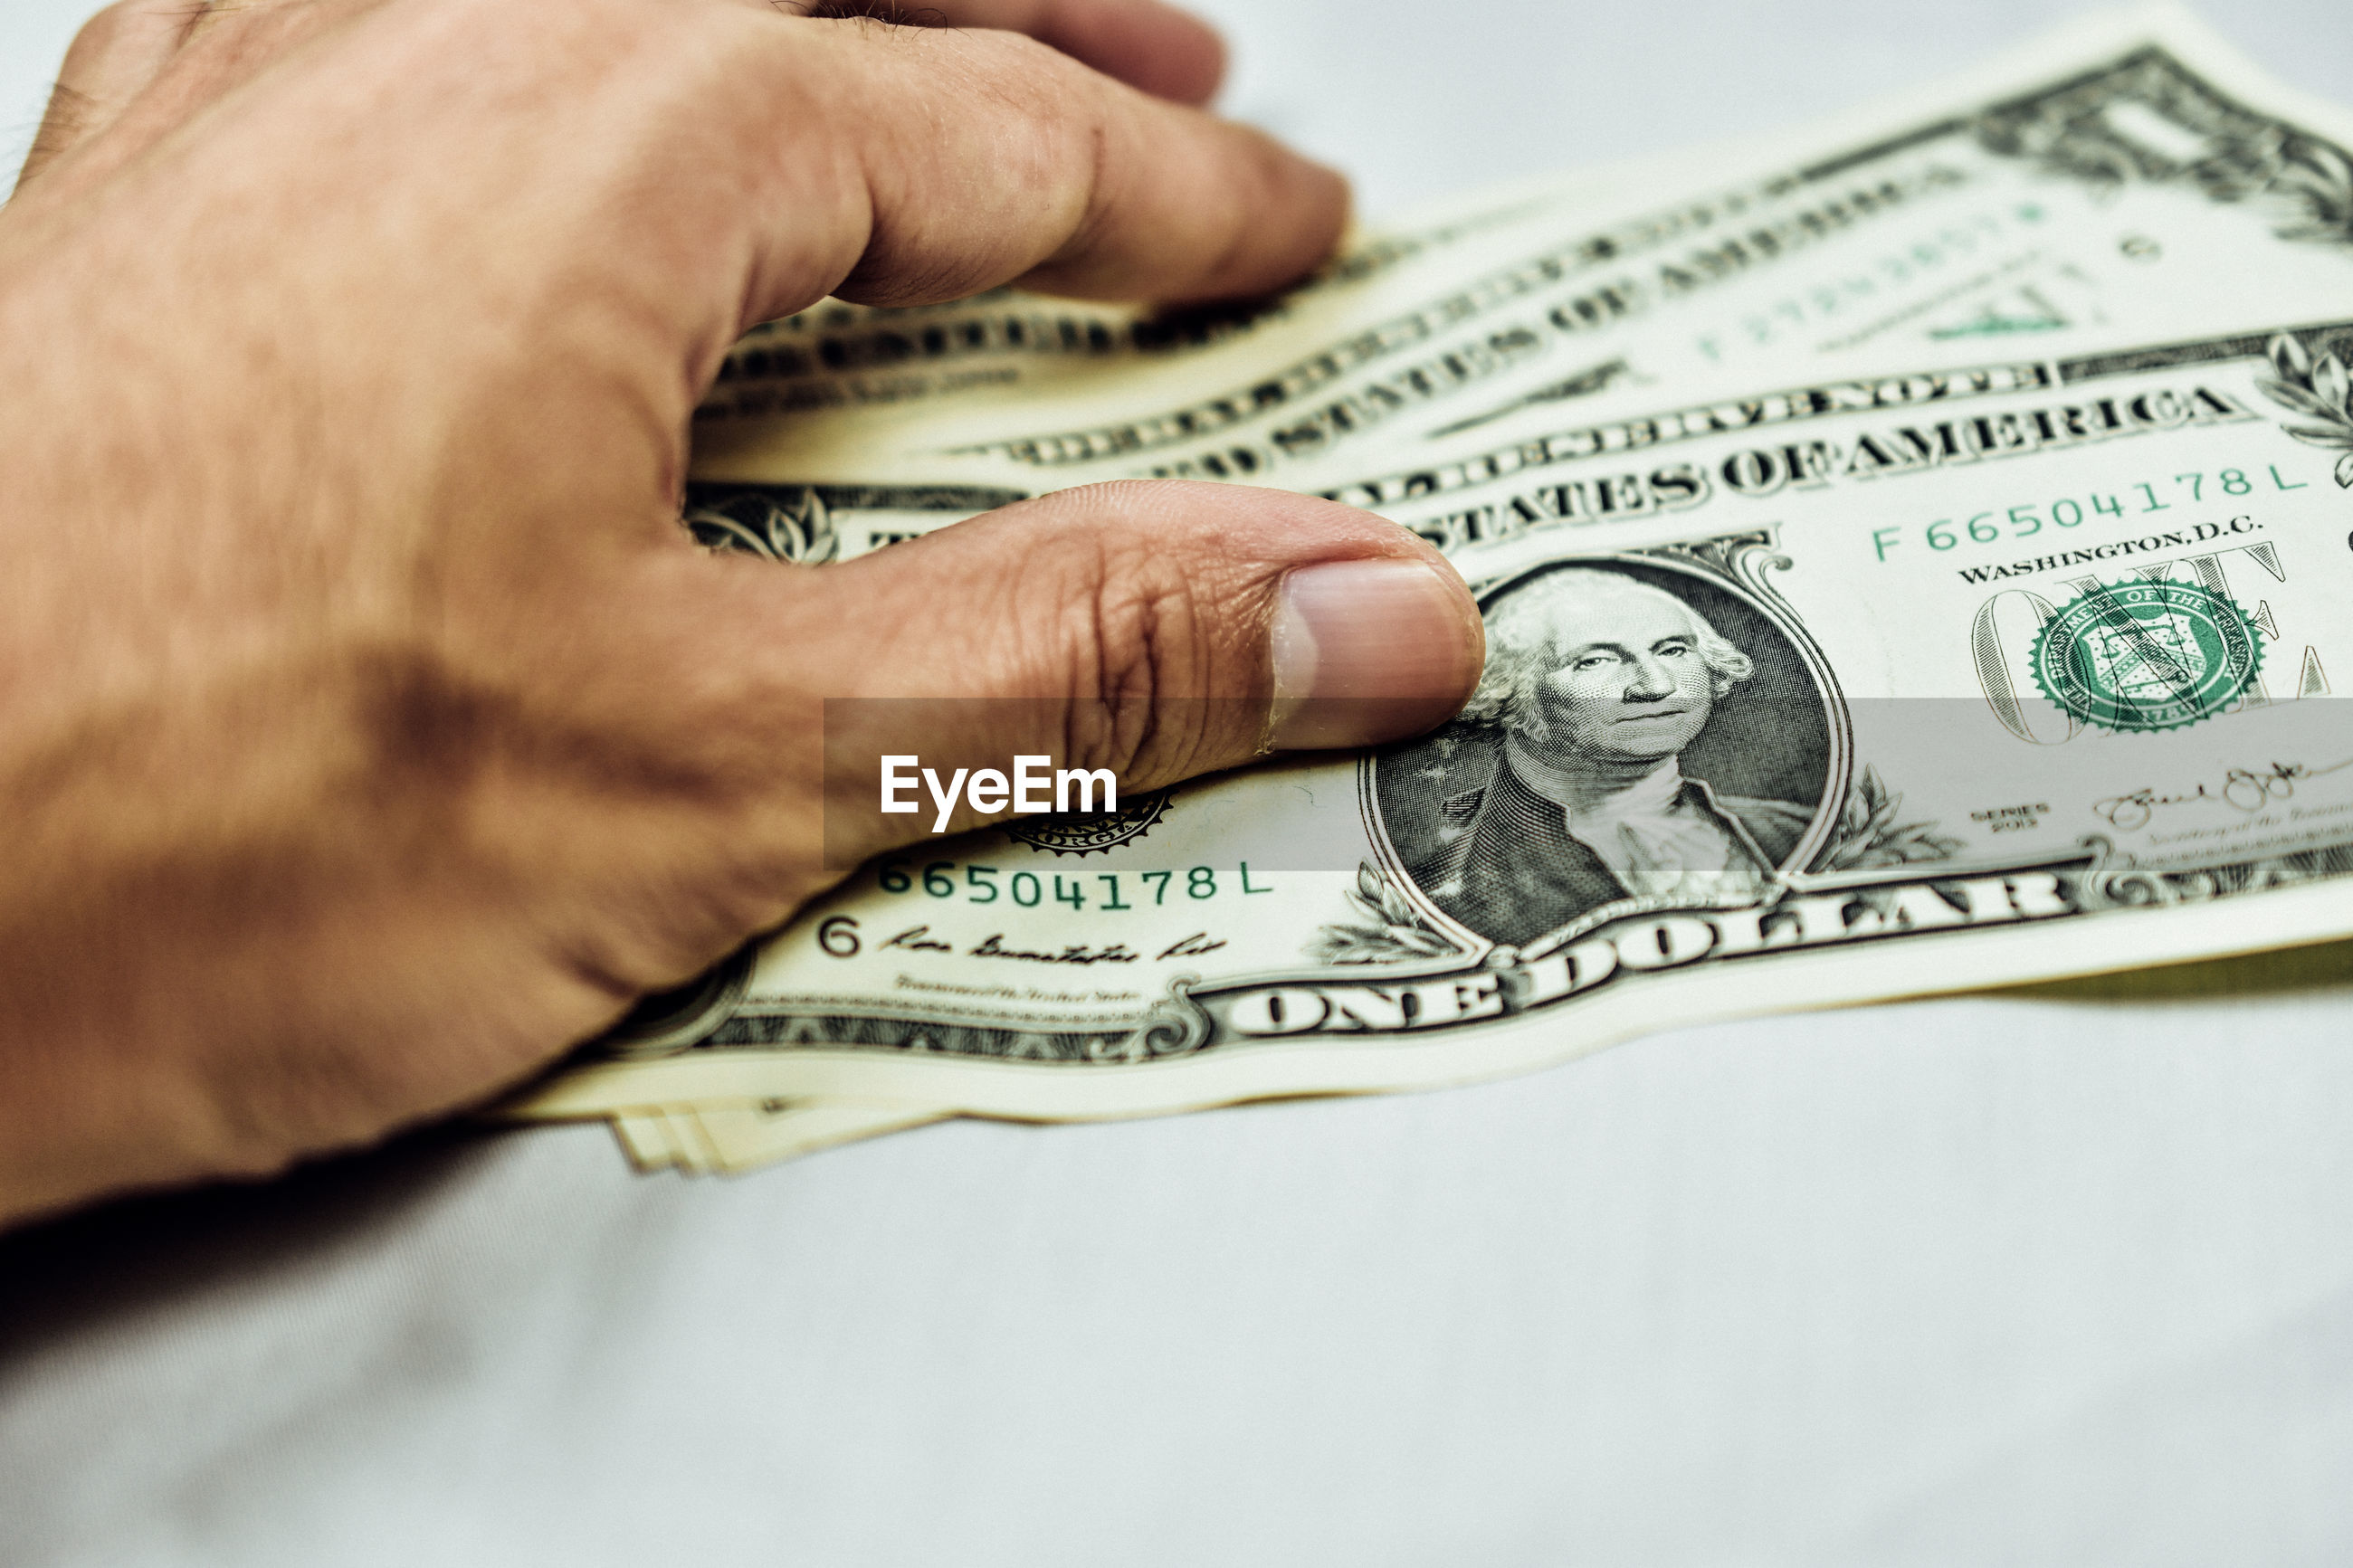 Close-up of human hand holding paper currencies on table